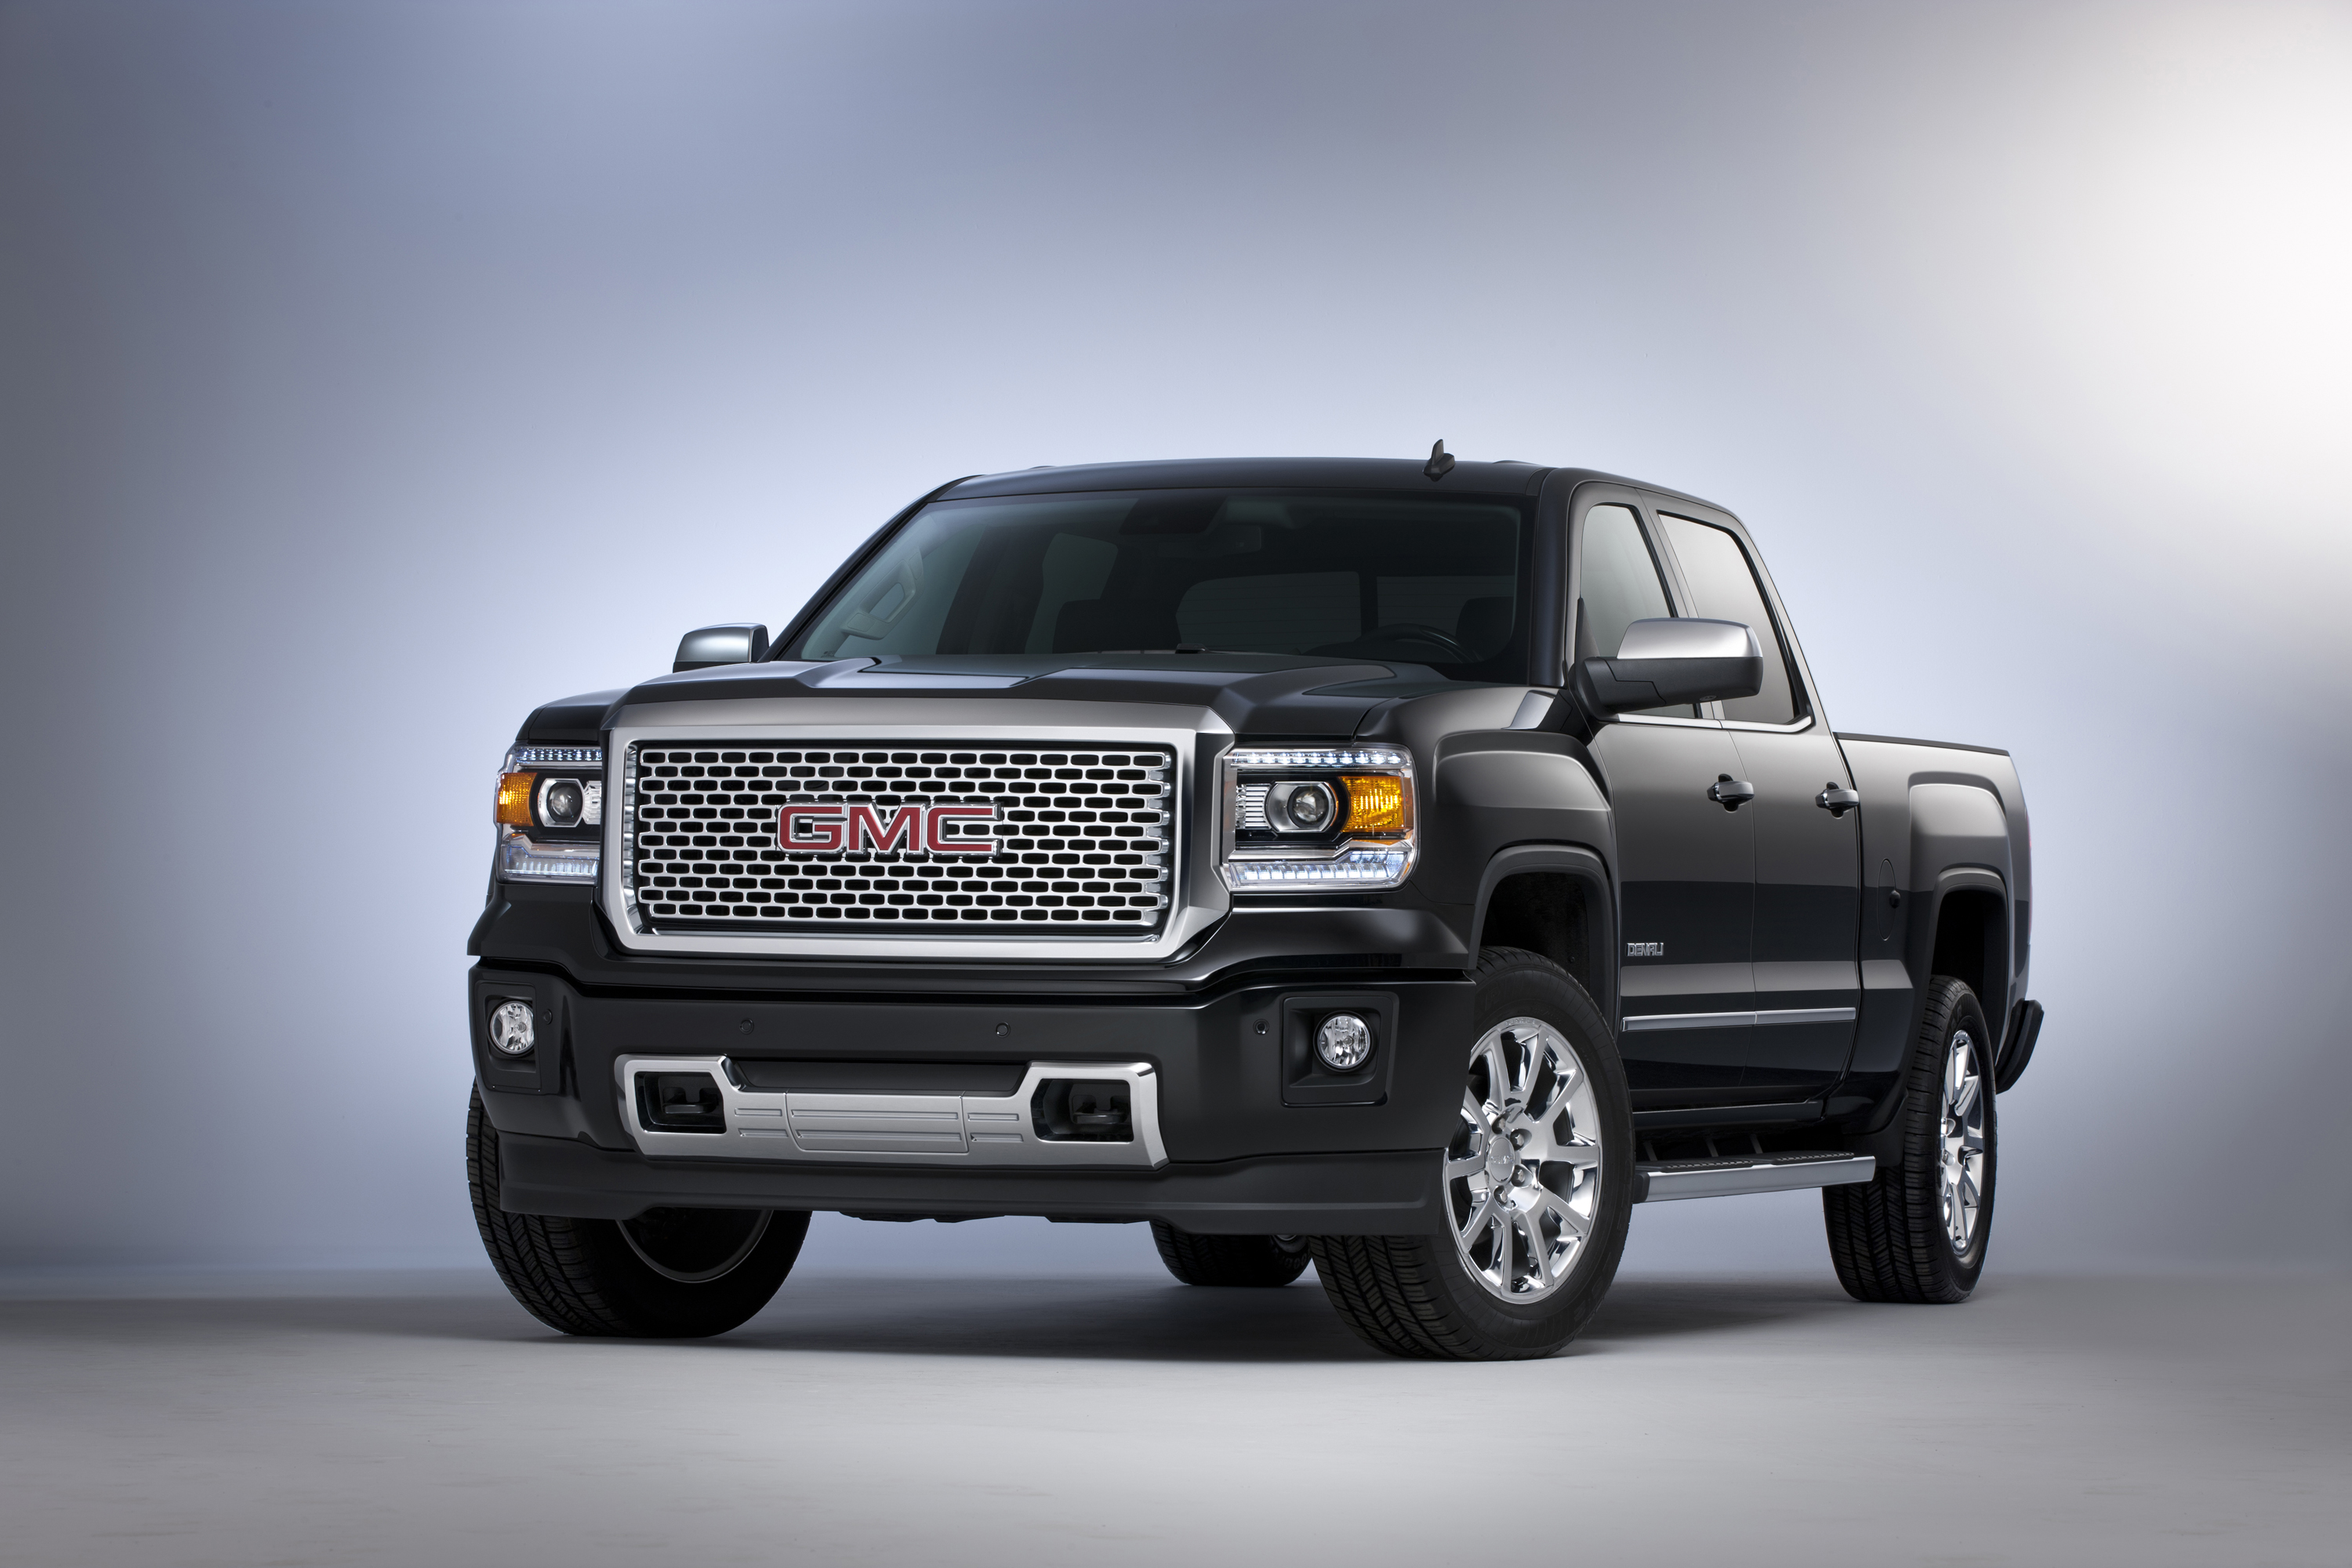 2014 Sierra Denali Pairs High Tech Luxury And Capability 2003 Gmc Transfer Case Identification